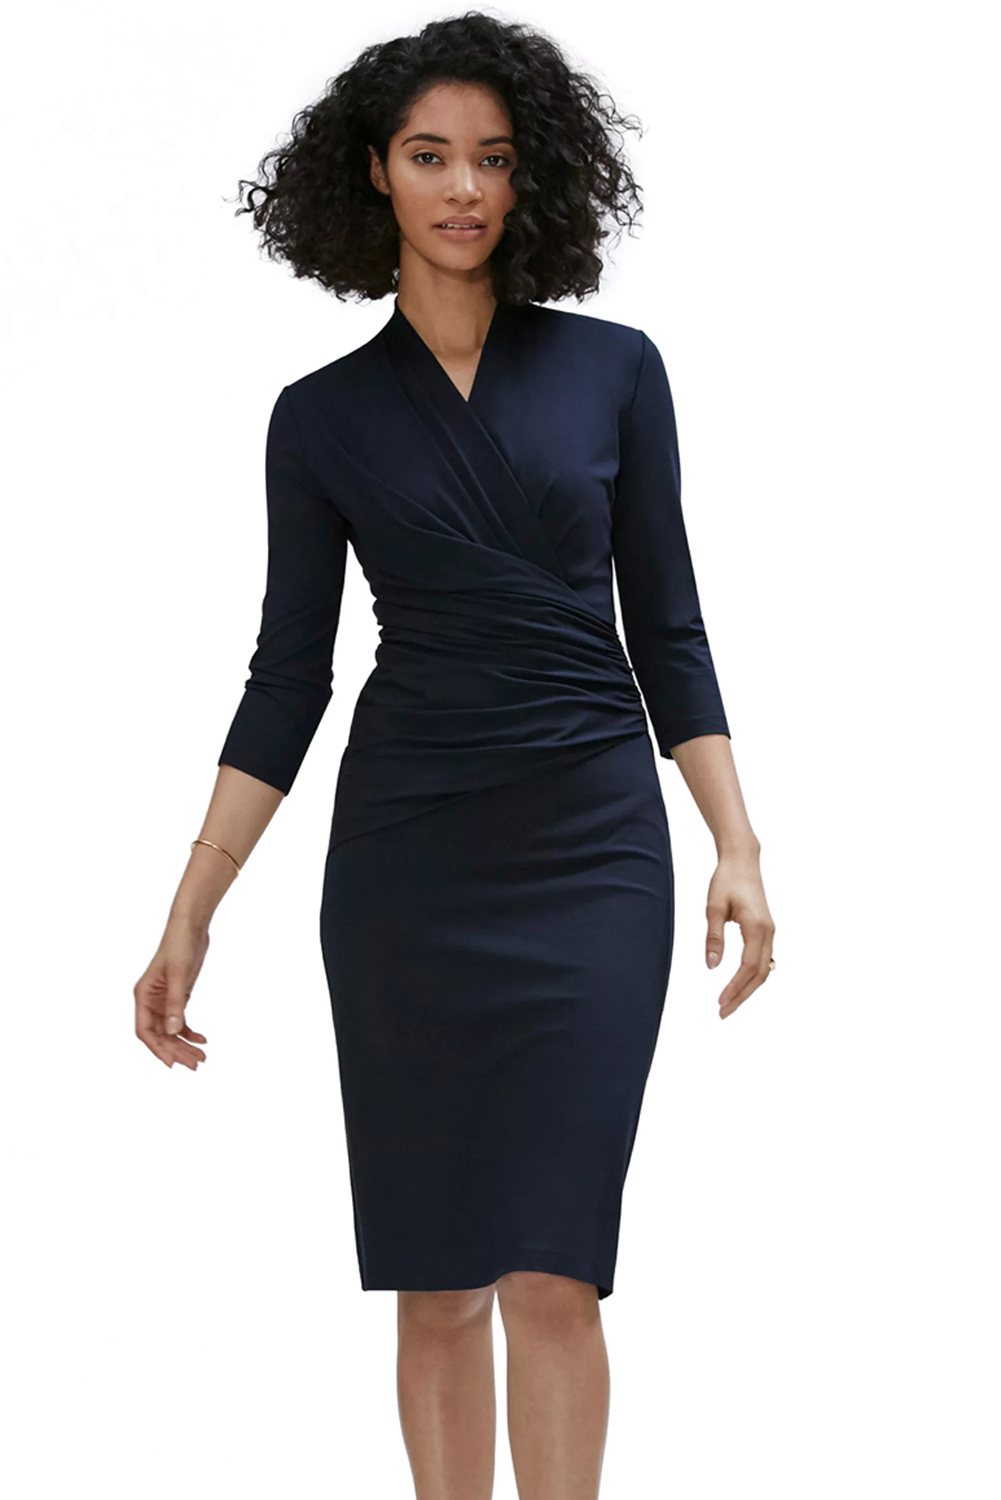 United states baby blue midi dress with sleeves